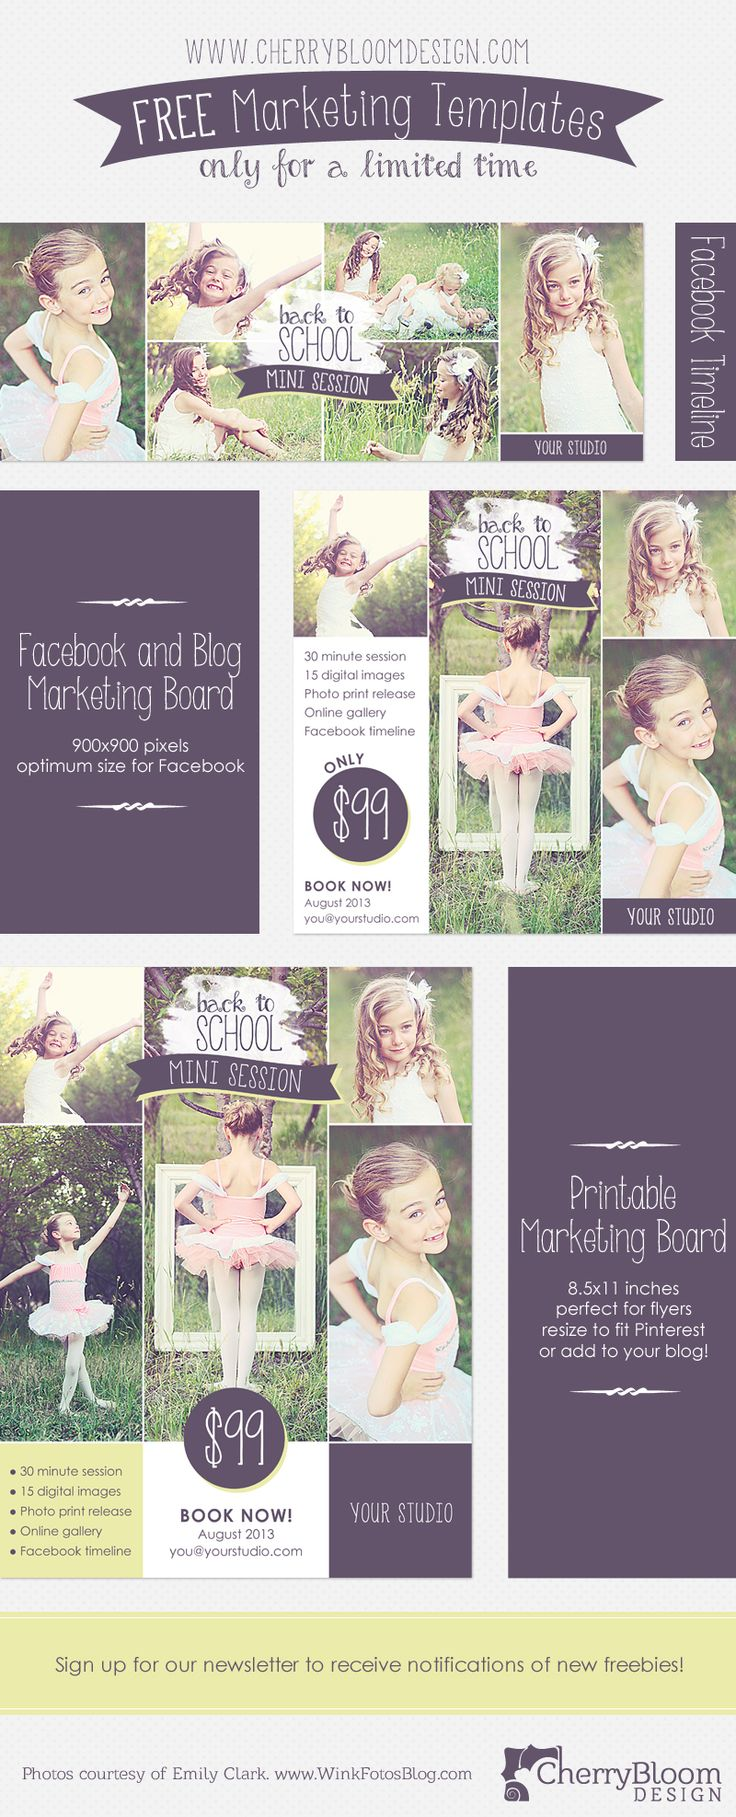 best ideas about templates for flyers bake 3 fabulous templates for photographers facebook timeline blog board facebook image and printable flyer for a limited time only learn more here